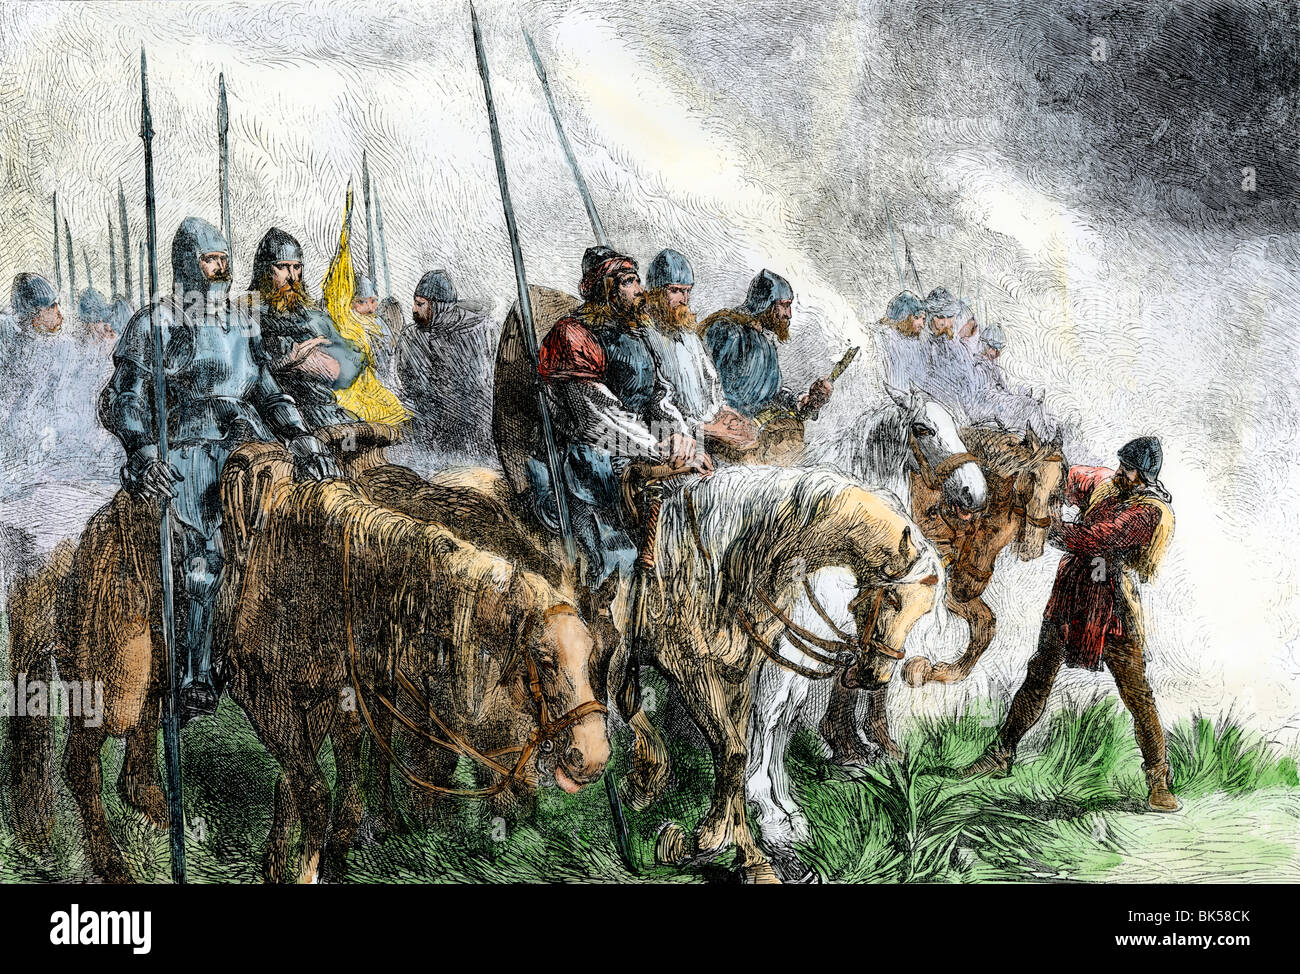 English army on the morning of battle at Agincourt, Hundred Years' War, 1415. Hand-colored woodcut - Stock Image